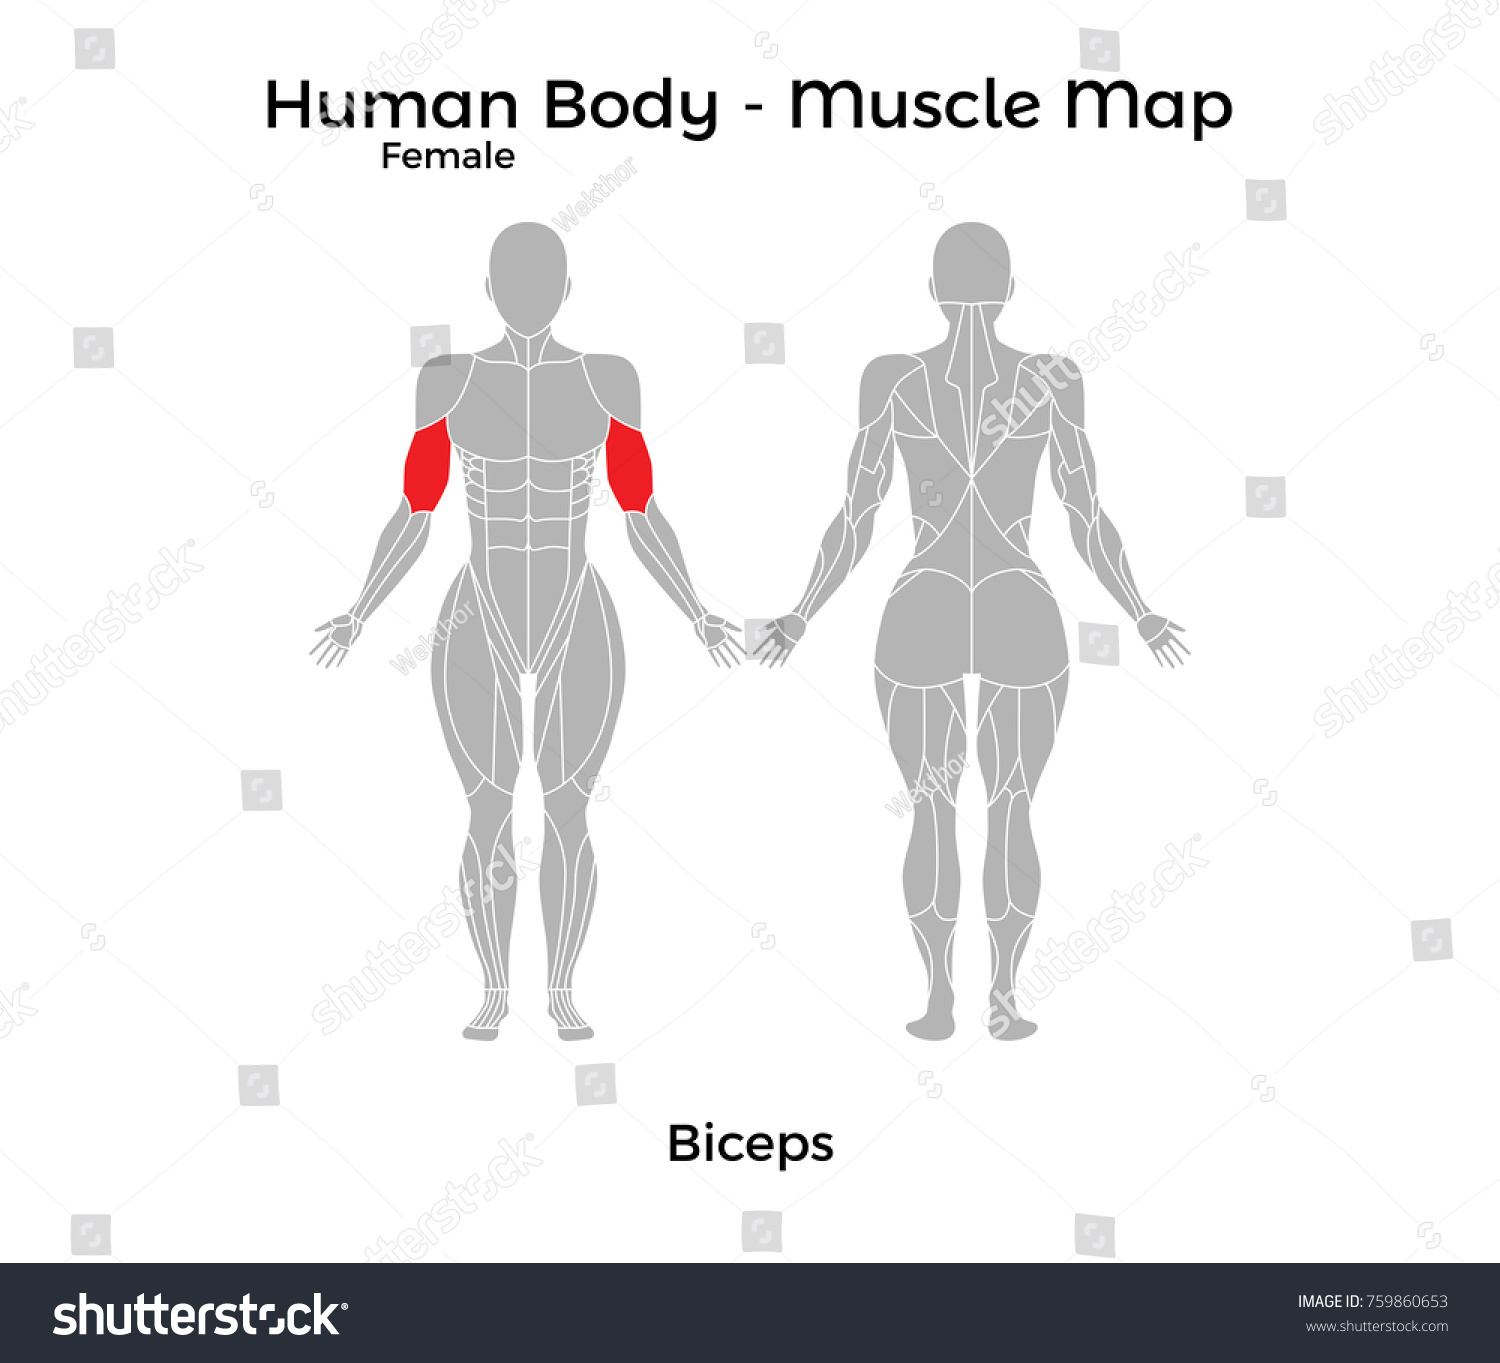 Female Human Body Muscle Map Biceps Stock Vector Royalty Free